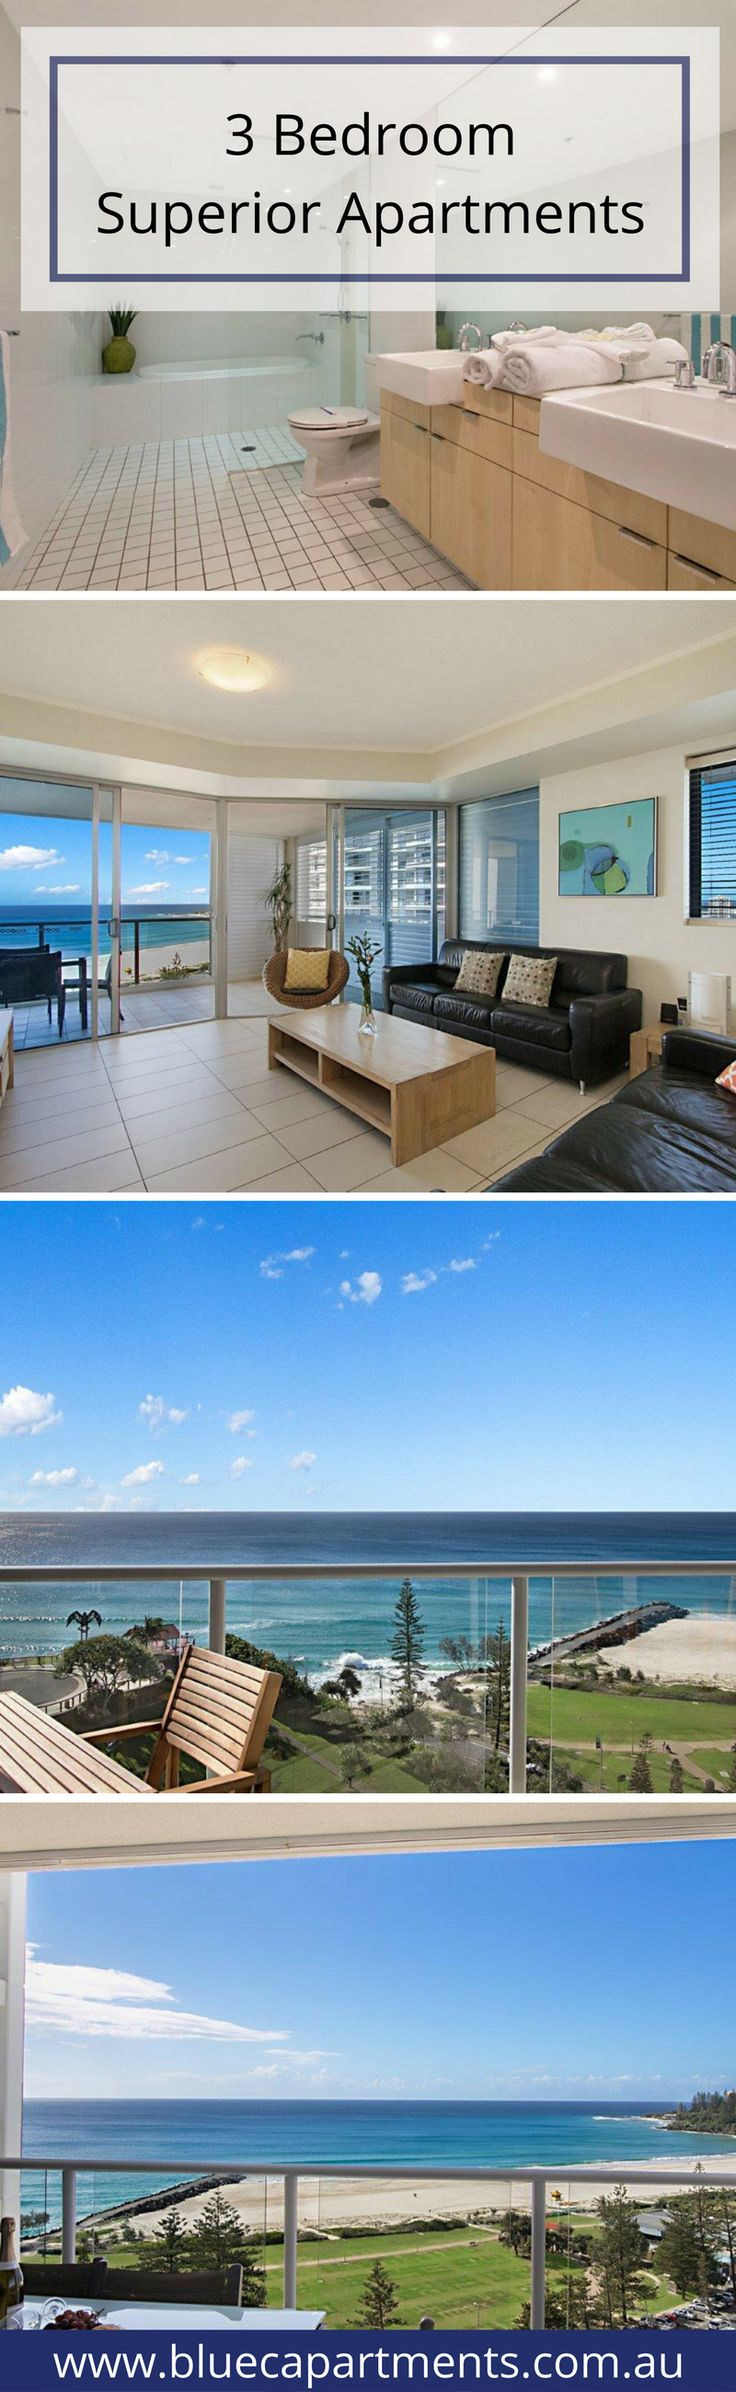 Whether you are here for a weekend, a week, or longer, you will find your Blue C apartment the perfect home away from home to relax, enjoy and explore the features our world-class southern Gold Coast location has to offer. CLICK here for more info http://bluecapartments.com.au/3-bedroom-apartment-coolangatta/ | Blue C Apartments Coolangatta Beach | Australia's Gold Coast & Tweed Valley Accommodations